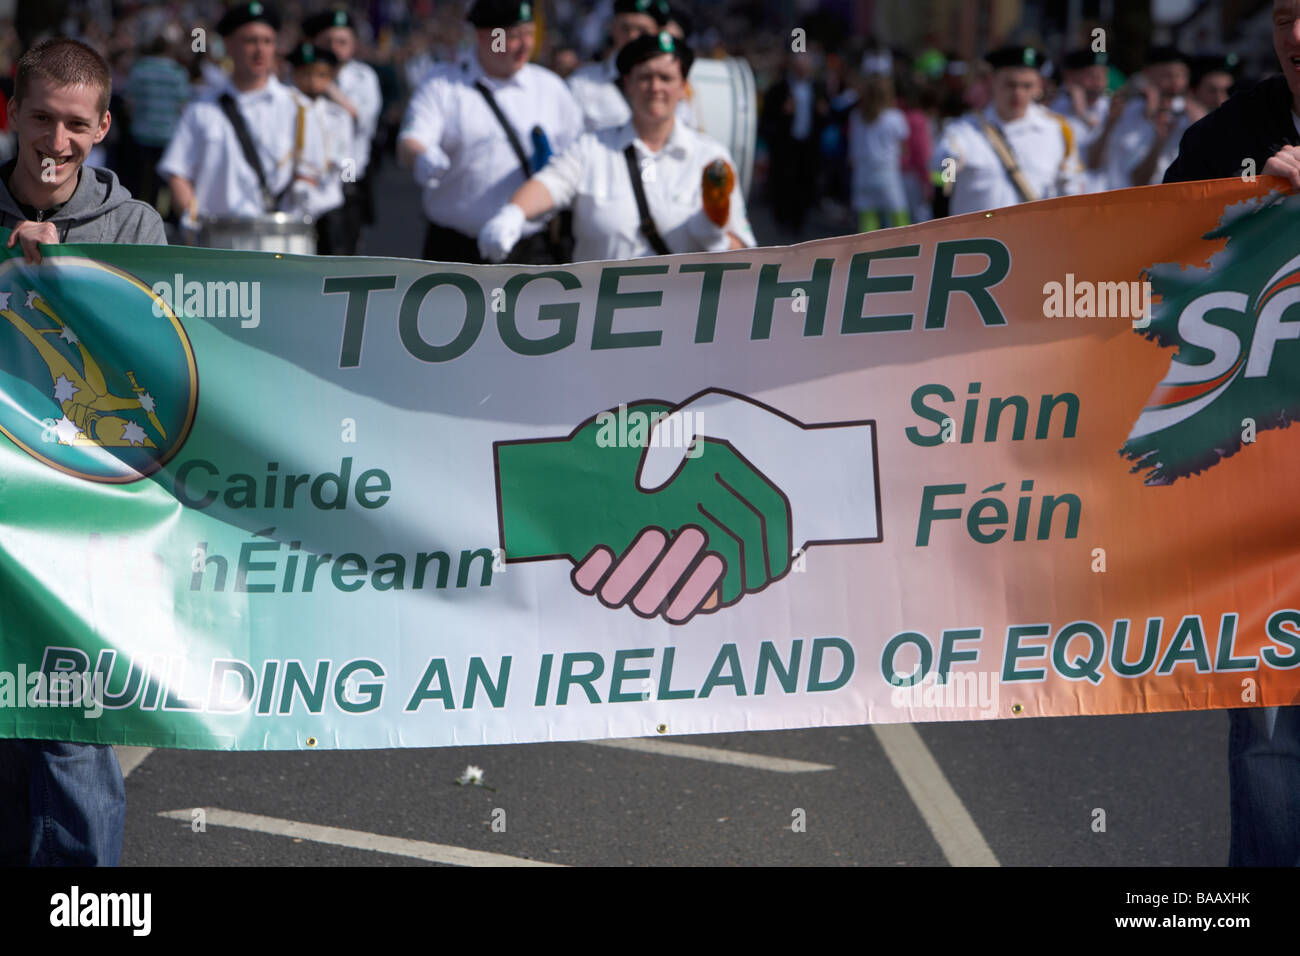 Sinn Fein ireland of equals together banner being carried on Easter Sunday during Easter Rising Commemoration Falls - Stock Image